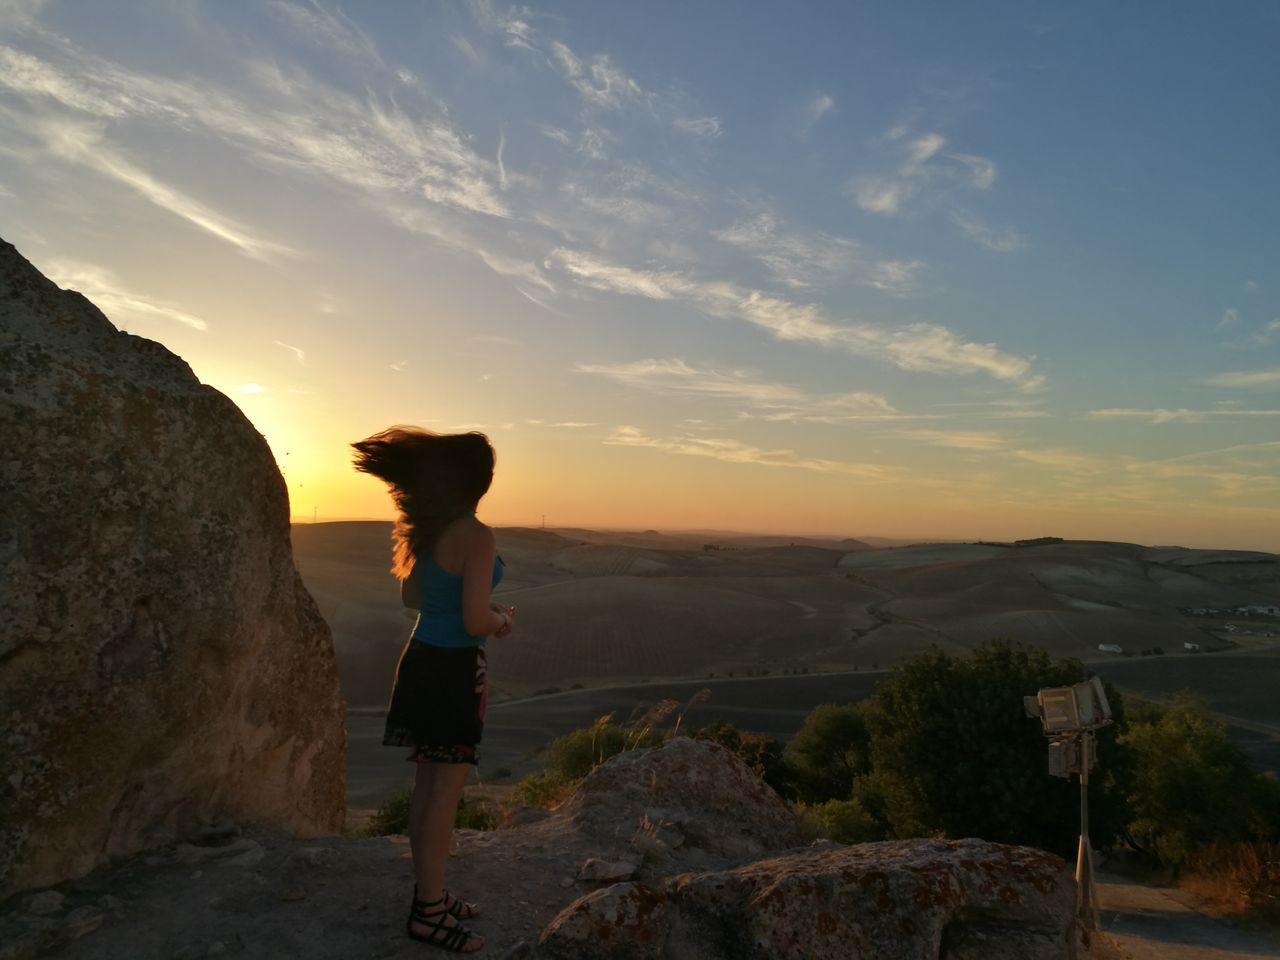 sky, sunset, one person, real people, leisure activity, lifestyles, standing, cloud - sky, full length, beauty in nature, rock, scenics - nature, side view, rock - object, nature, mountain, women, solid, non-urban scene, outdoors, looking at view